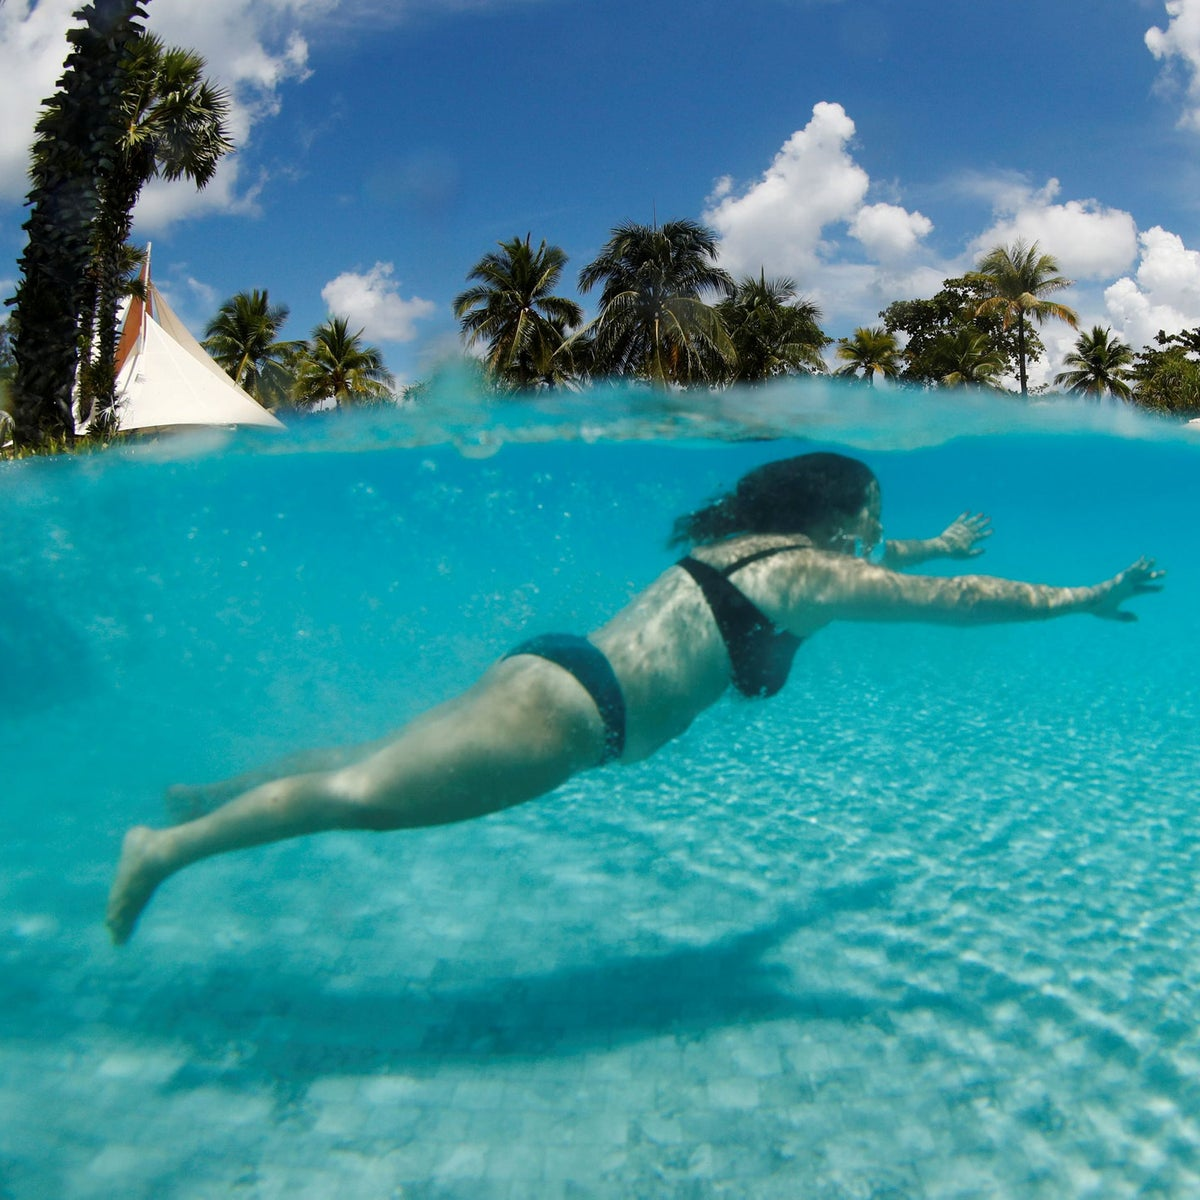 A tourist from Israel enjoys in a swimming pool in Phuket, Thailand, this month.